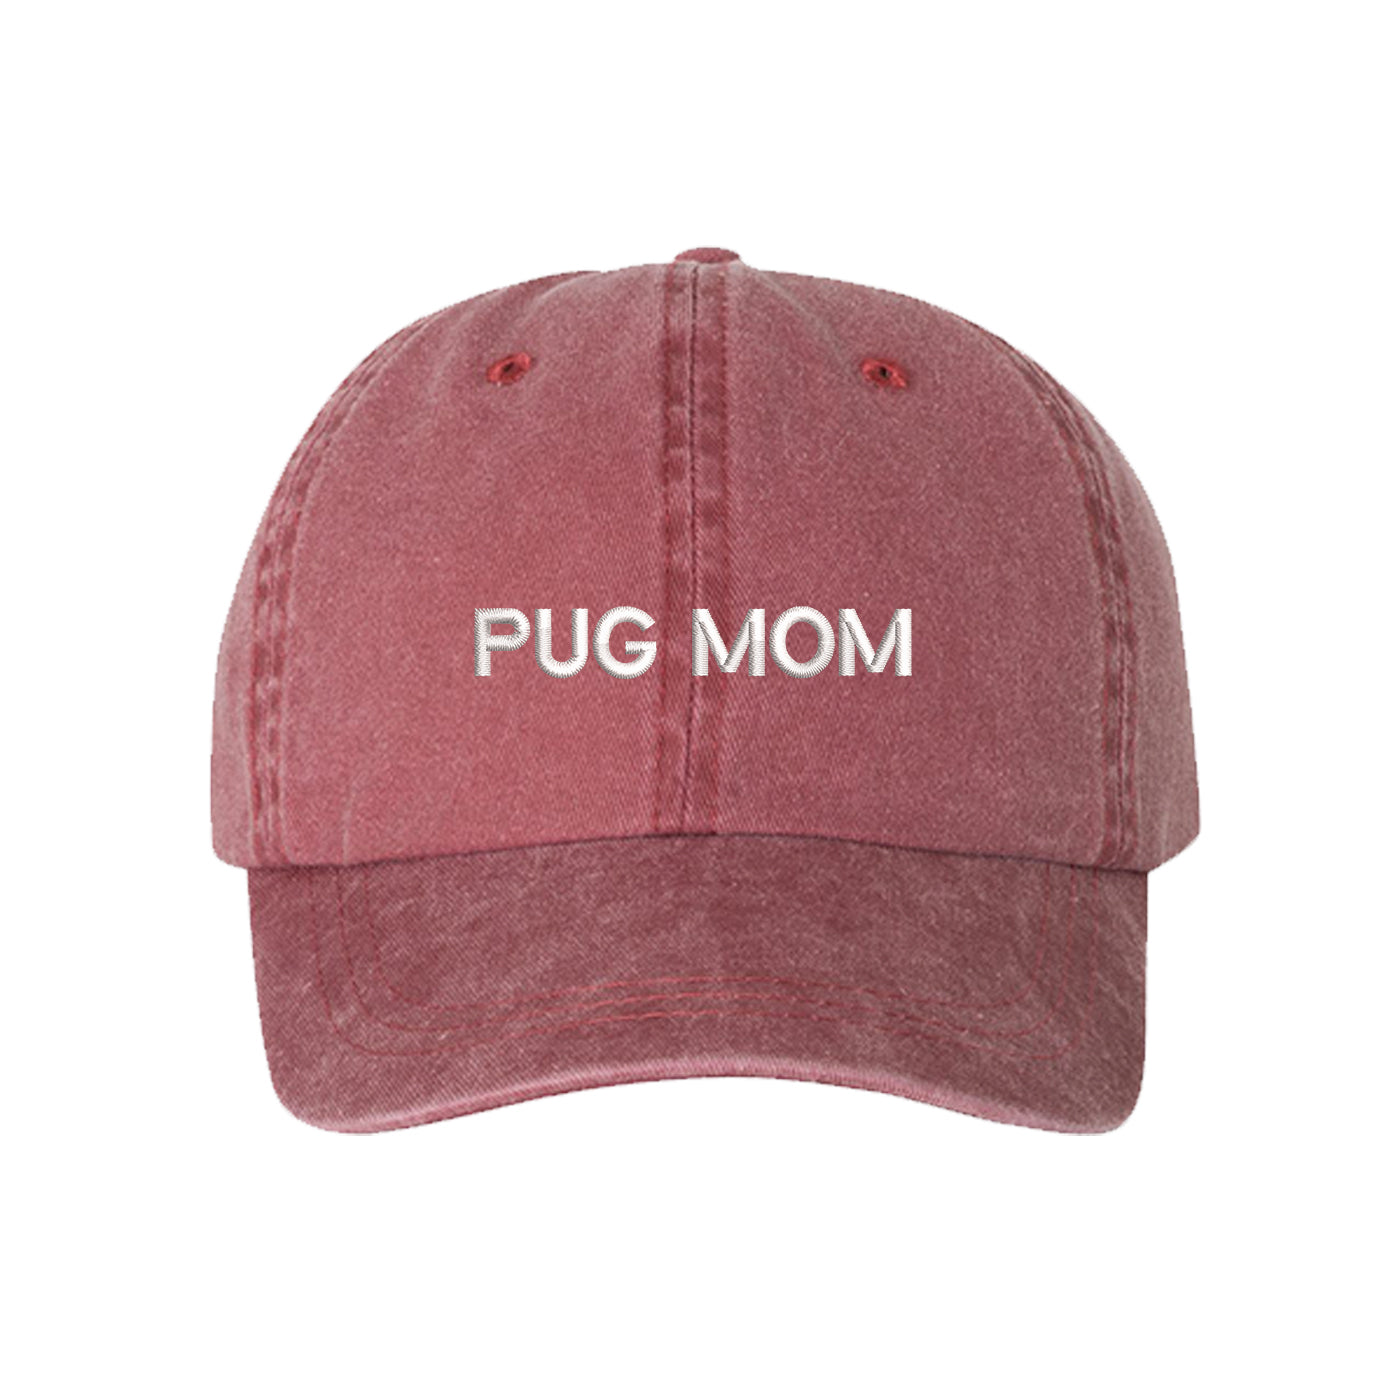 Pug Mom Washed Baseball Hat, Pug Mom Dad Hat, Dog Parent Hats, Embroidered Dad hat, Animal Lover Gifts, Pug Mother, Mothers Day Gift, Pug Mama, DSY Lifestyle Dad Hats, Wine Washed Baseball Hat